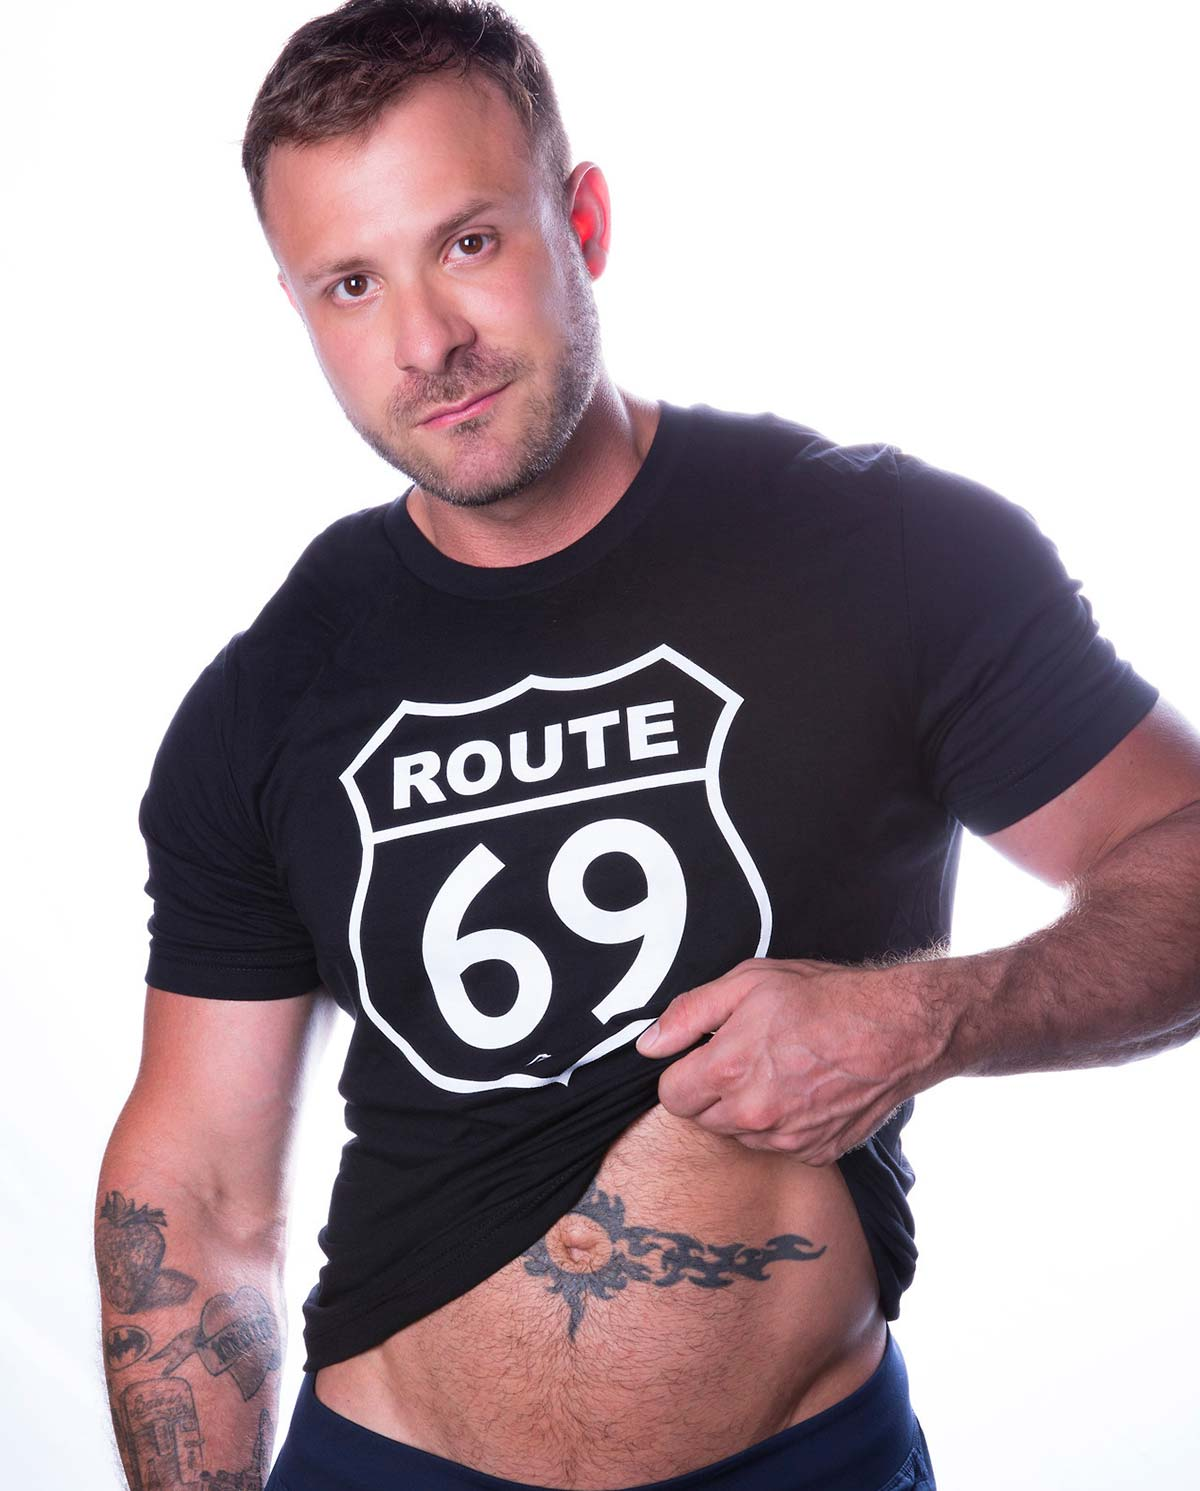 Male model wearing Ajaxx63 Falcon Studios Route 69 Men's T-shirt